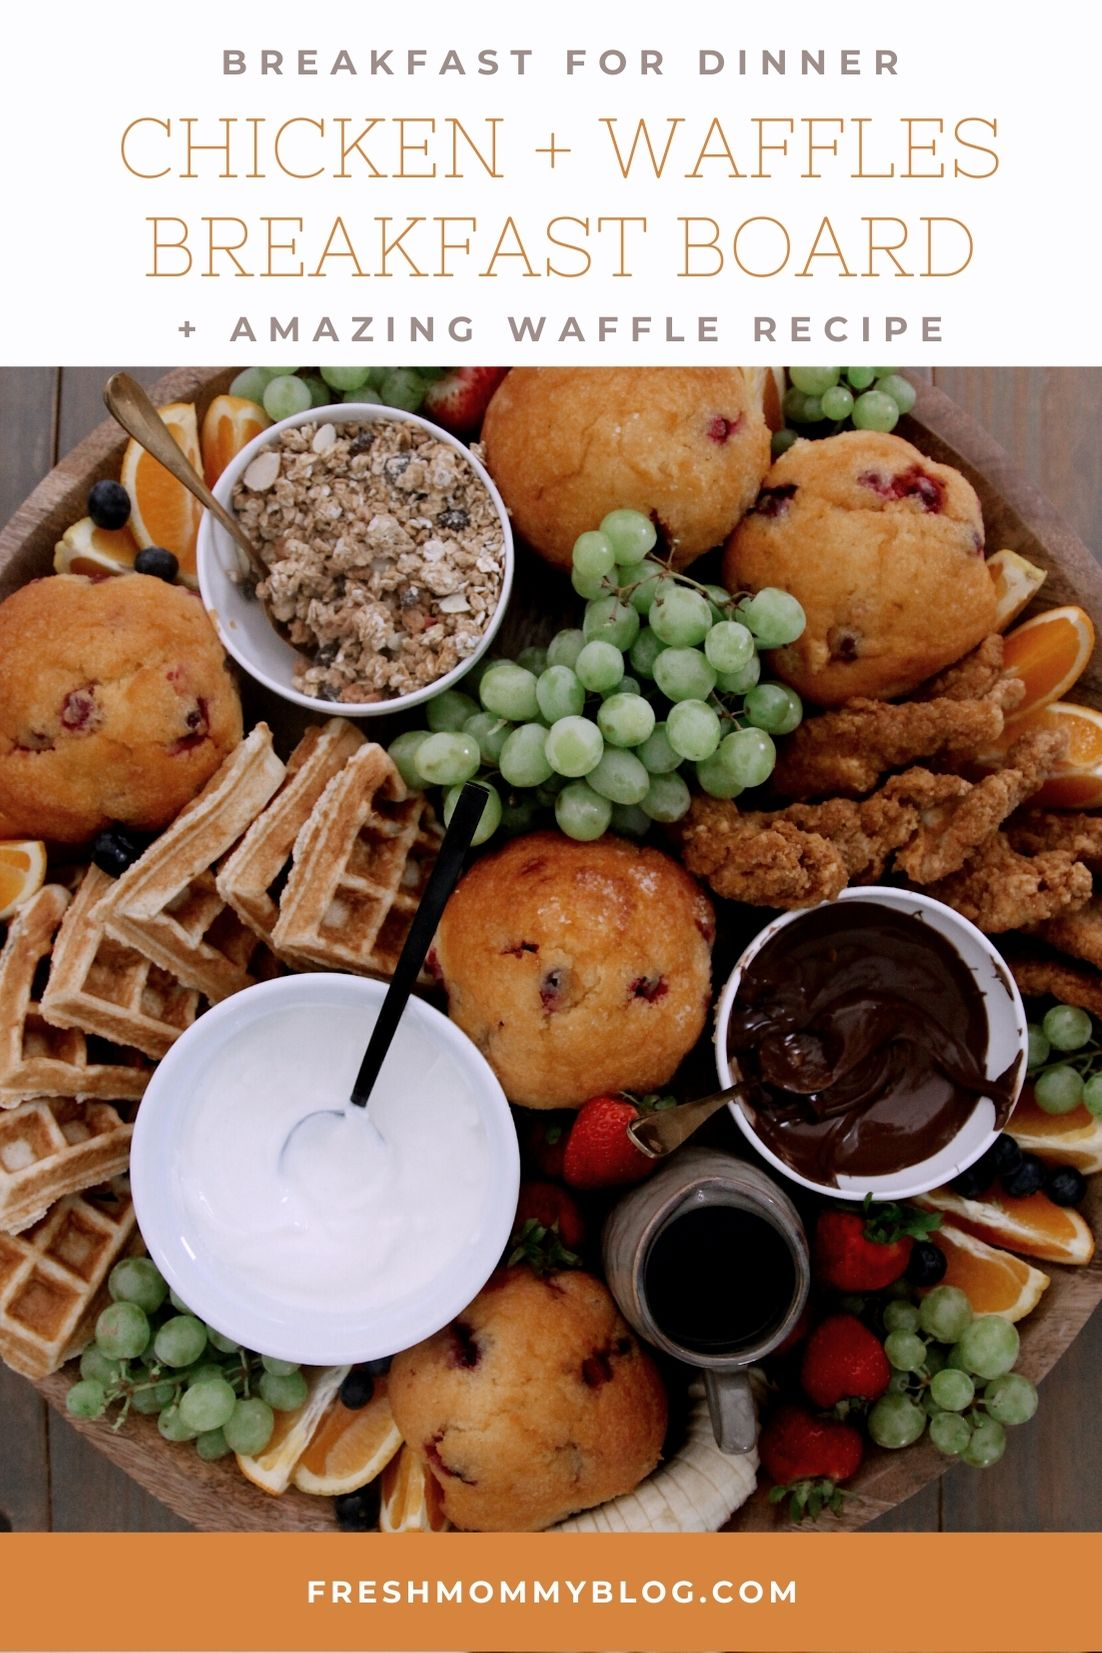 Easy Waffle Recipe for an Amazing Breakfast for Dinner Family Night - Chicken and Waffles Breakfast Board | Waffle Recipe by popular Florida lifestyle blog, Fresh Mommy Blog: image of a wooden board filled with waffles, muffins, grapes, strawberries, orange slices, granola, fried chicken, yogurt, and chocolate sauce.